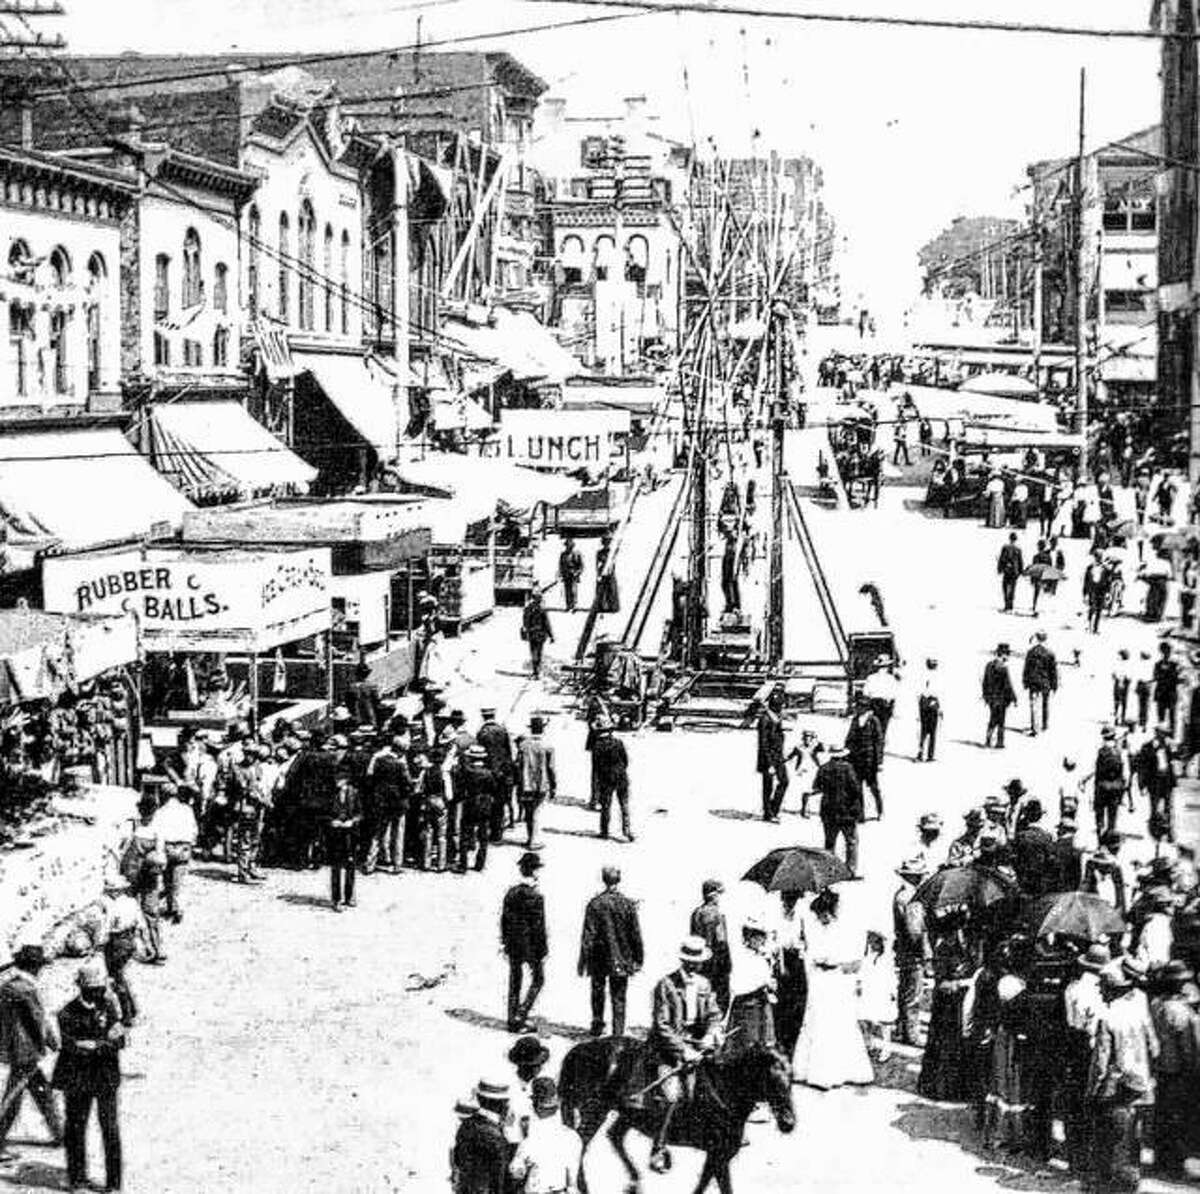 """A festive crowd gathered in Market Square (now Lincoln-Douglas Square) in 1900 for a carnival or exposition. Bunting drapes the Laura Building and other stores along Broadway. Any special event brought out crowds dressed in their finest. Circuses were also popular entertainment for Altonians. Several companies performed through the years at a field on Illinois and Indiana Avenues, now known as """"Dogtown."""""""